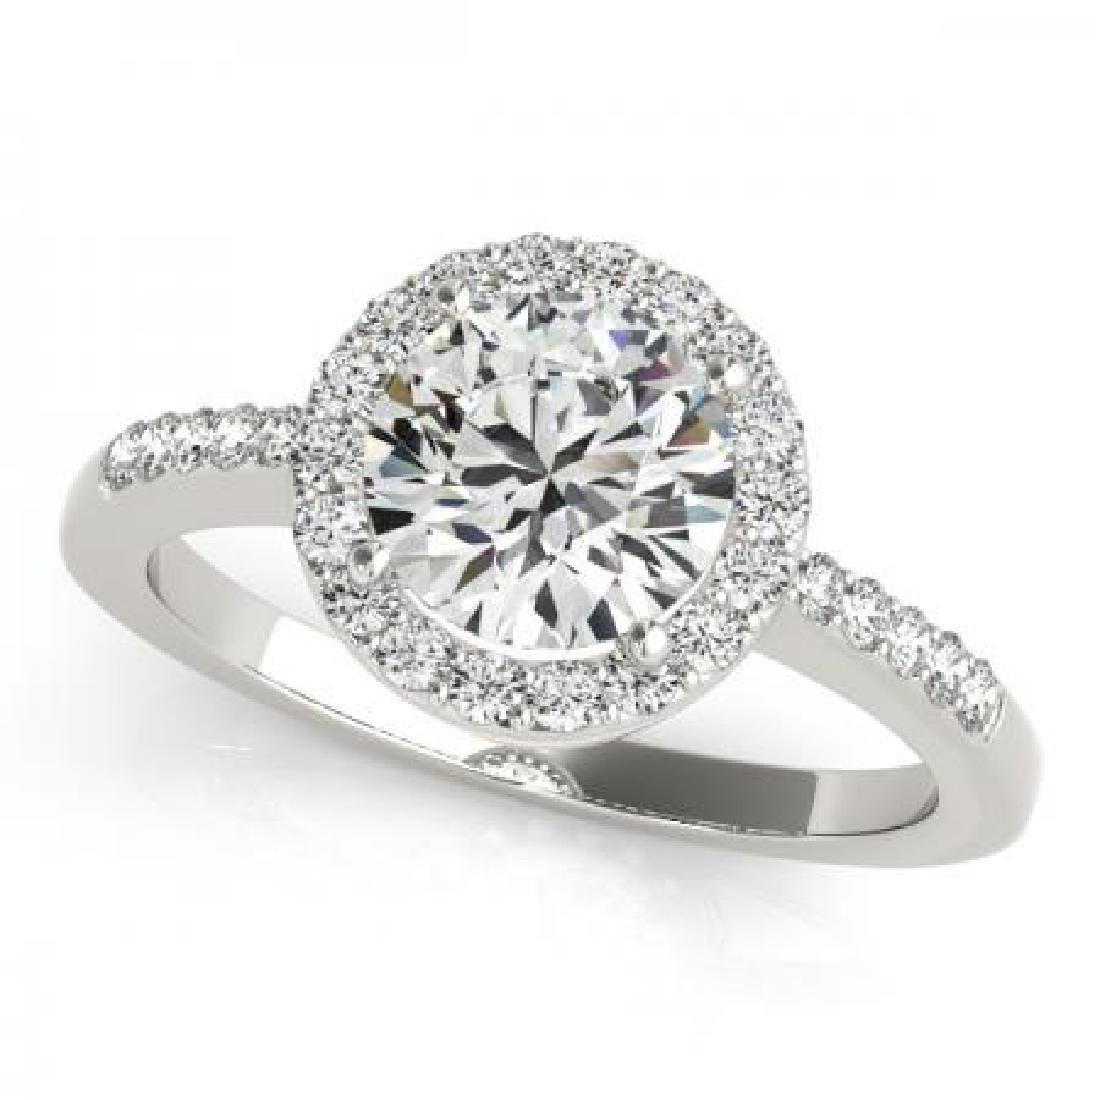 CERTIFIED PLATINUM 1.35 CT G-H/VS-SI1 DIAMOND HALO ENGA